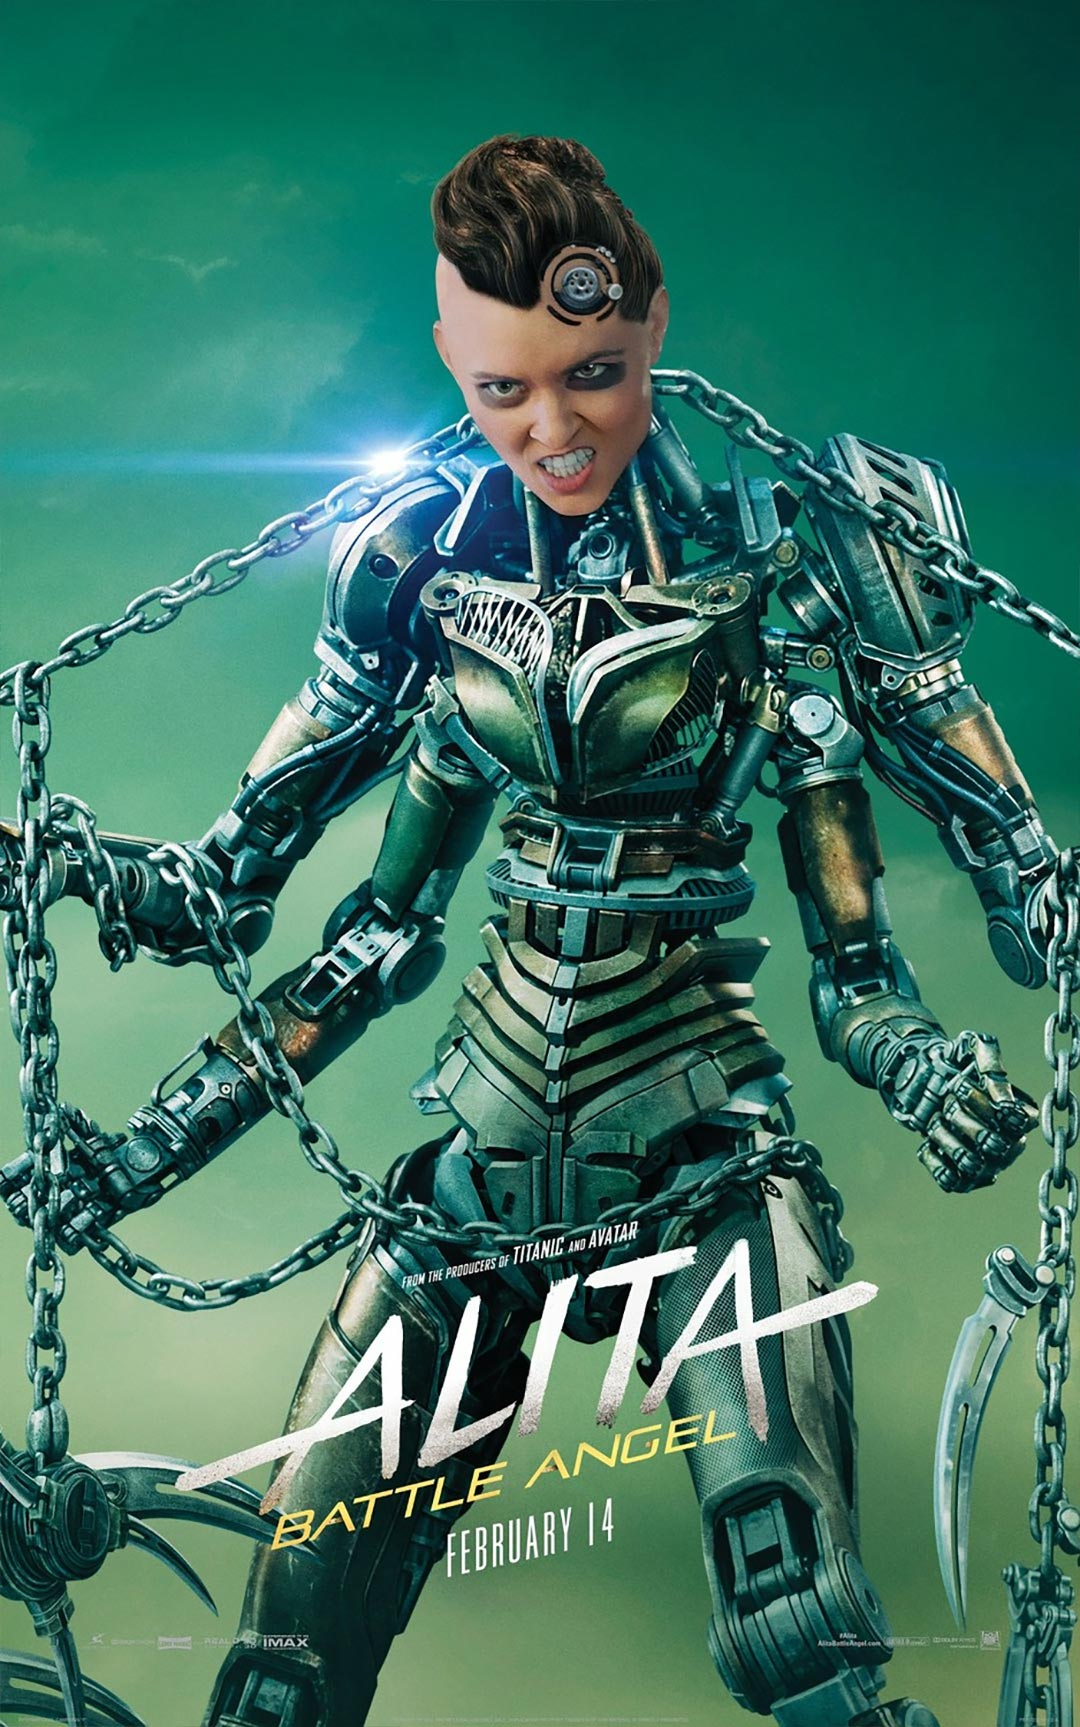 Alita: Battle Angel Poster #5